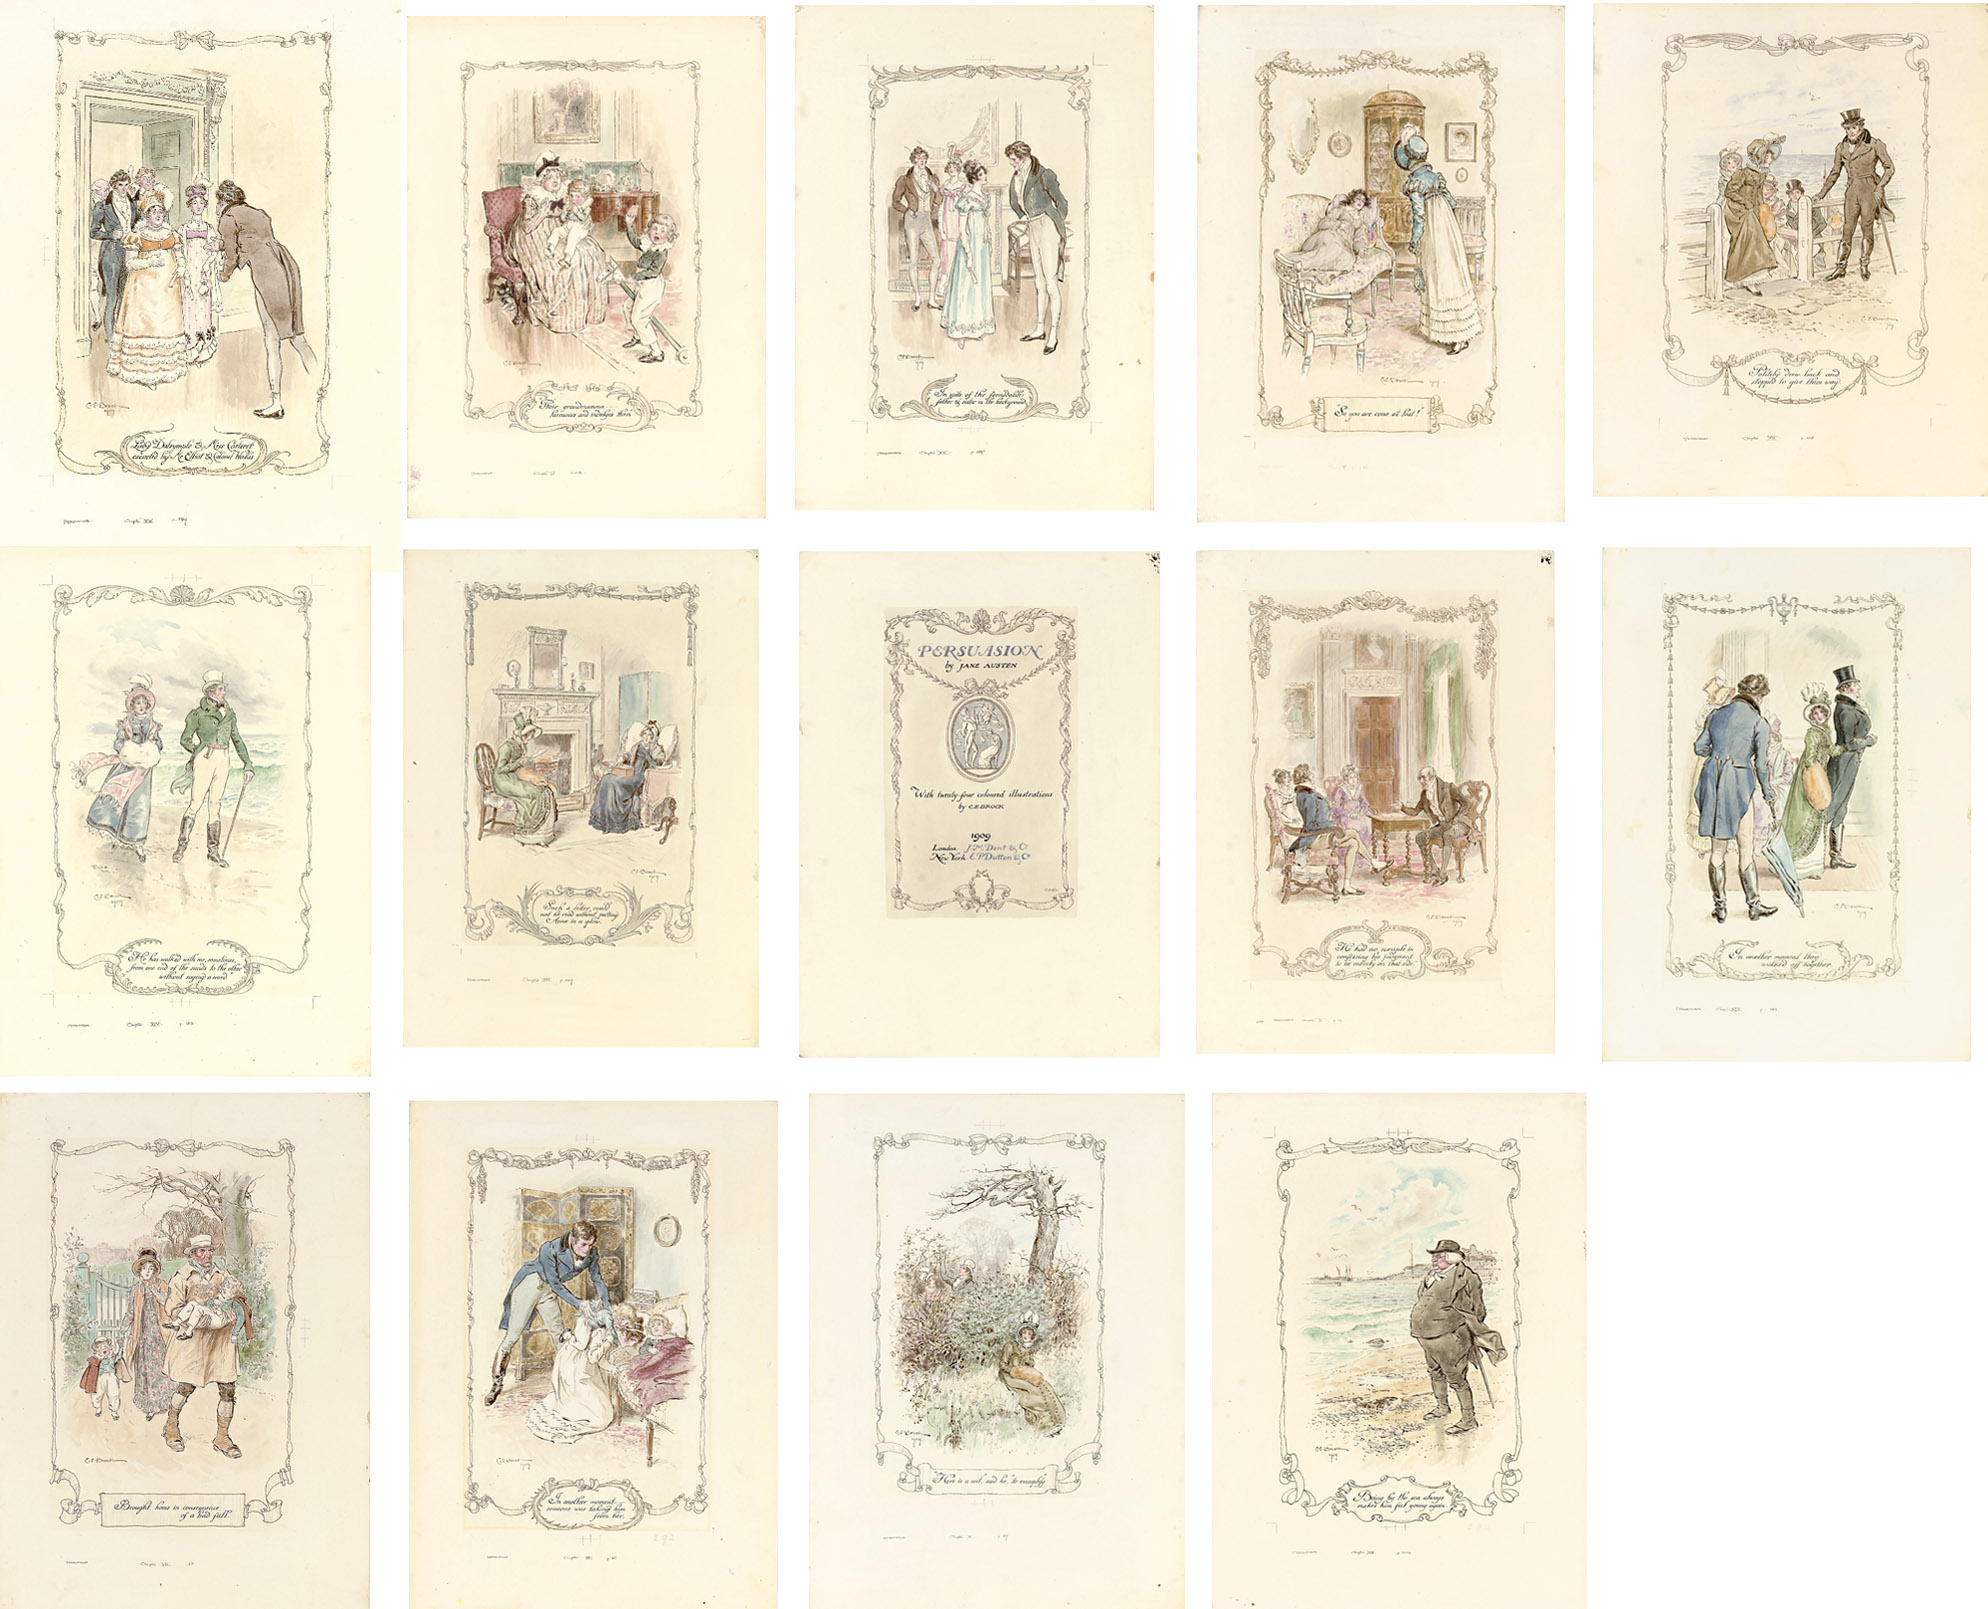 BROCK, Charles Edmund, R.I. (1870-1938). A series of fine ink and watercolour drawings for Jane Austen's Persuasion, 1909.